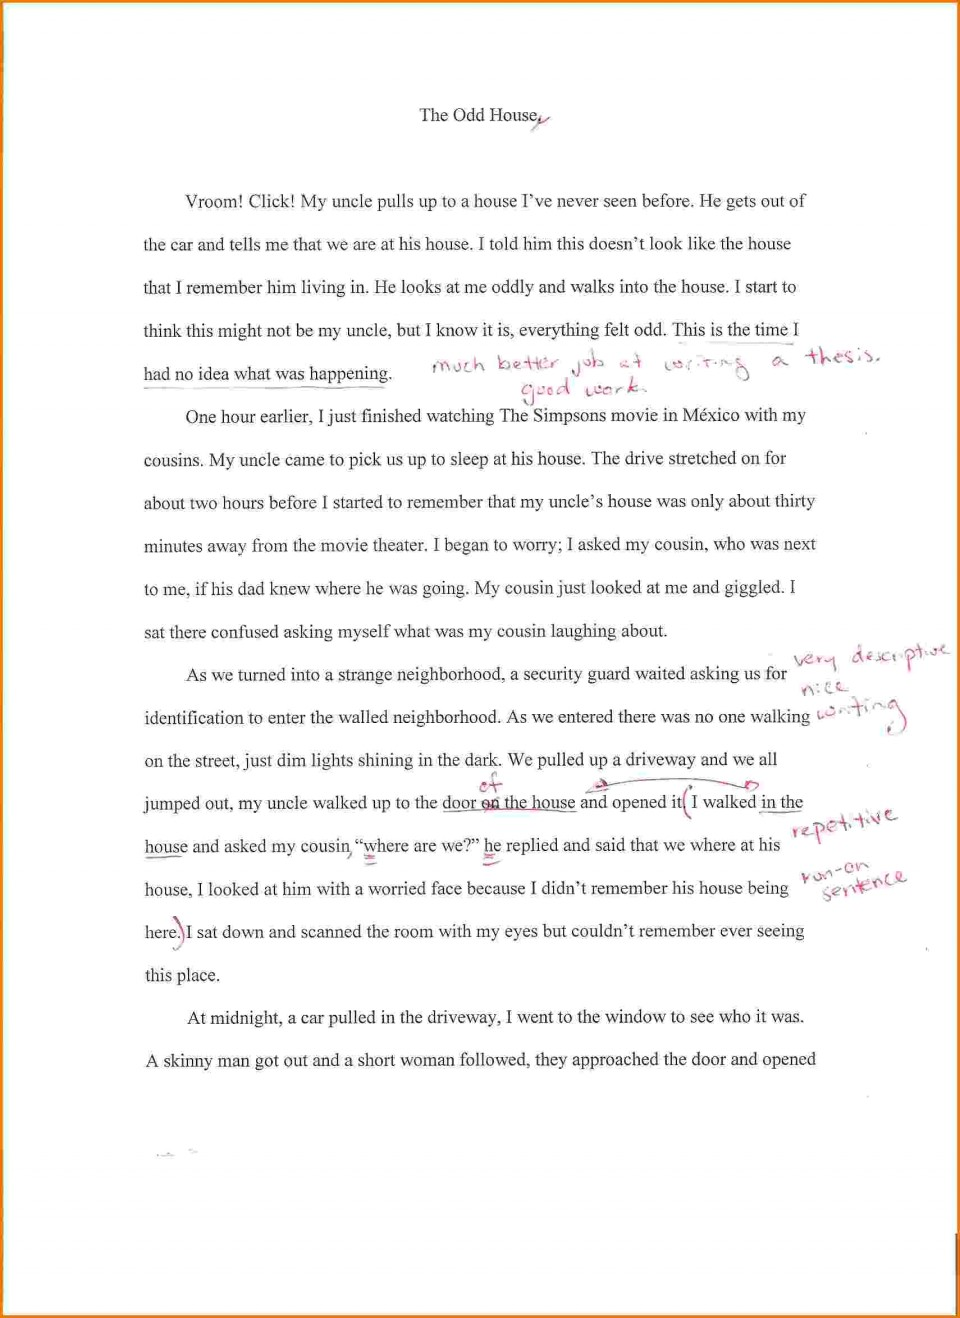 006 How To Write Autobiography Essay Example Family Background Autobiographysample2 Exceptional A An Introduction Autobiographical For College Grad School 960